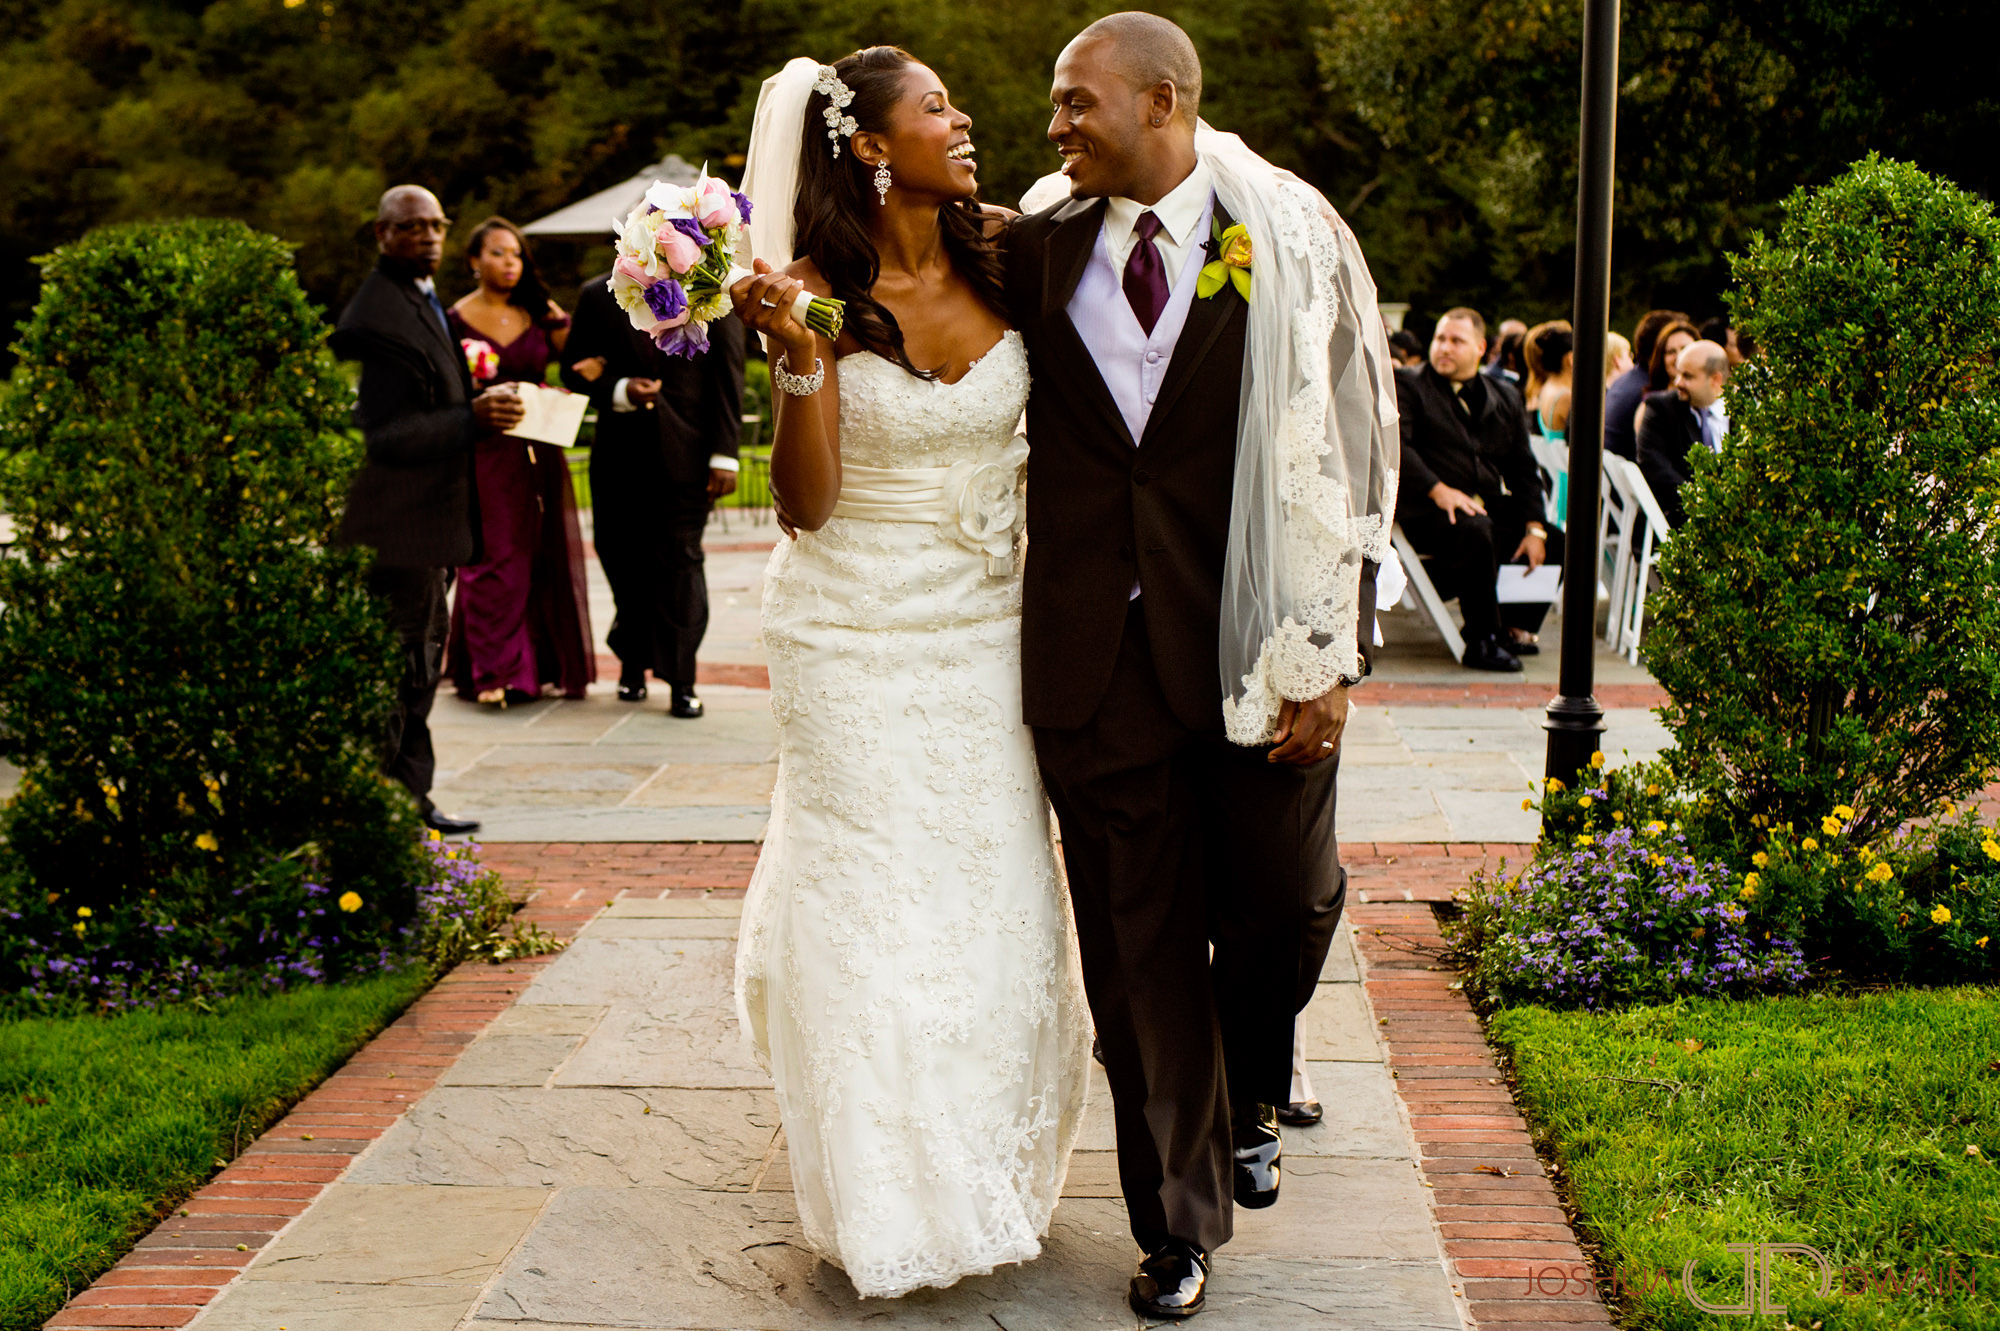 danielle-brandon-017-nyit-de-seversky-mansionold-westbury-new-yorkwedding-photographer-joshua-dwain-jd4_9464final